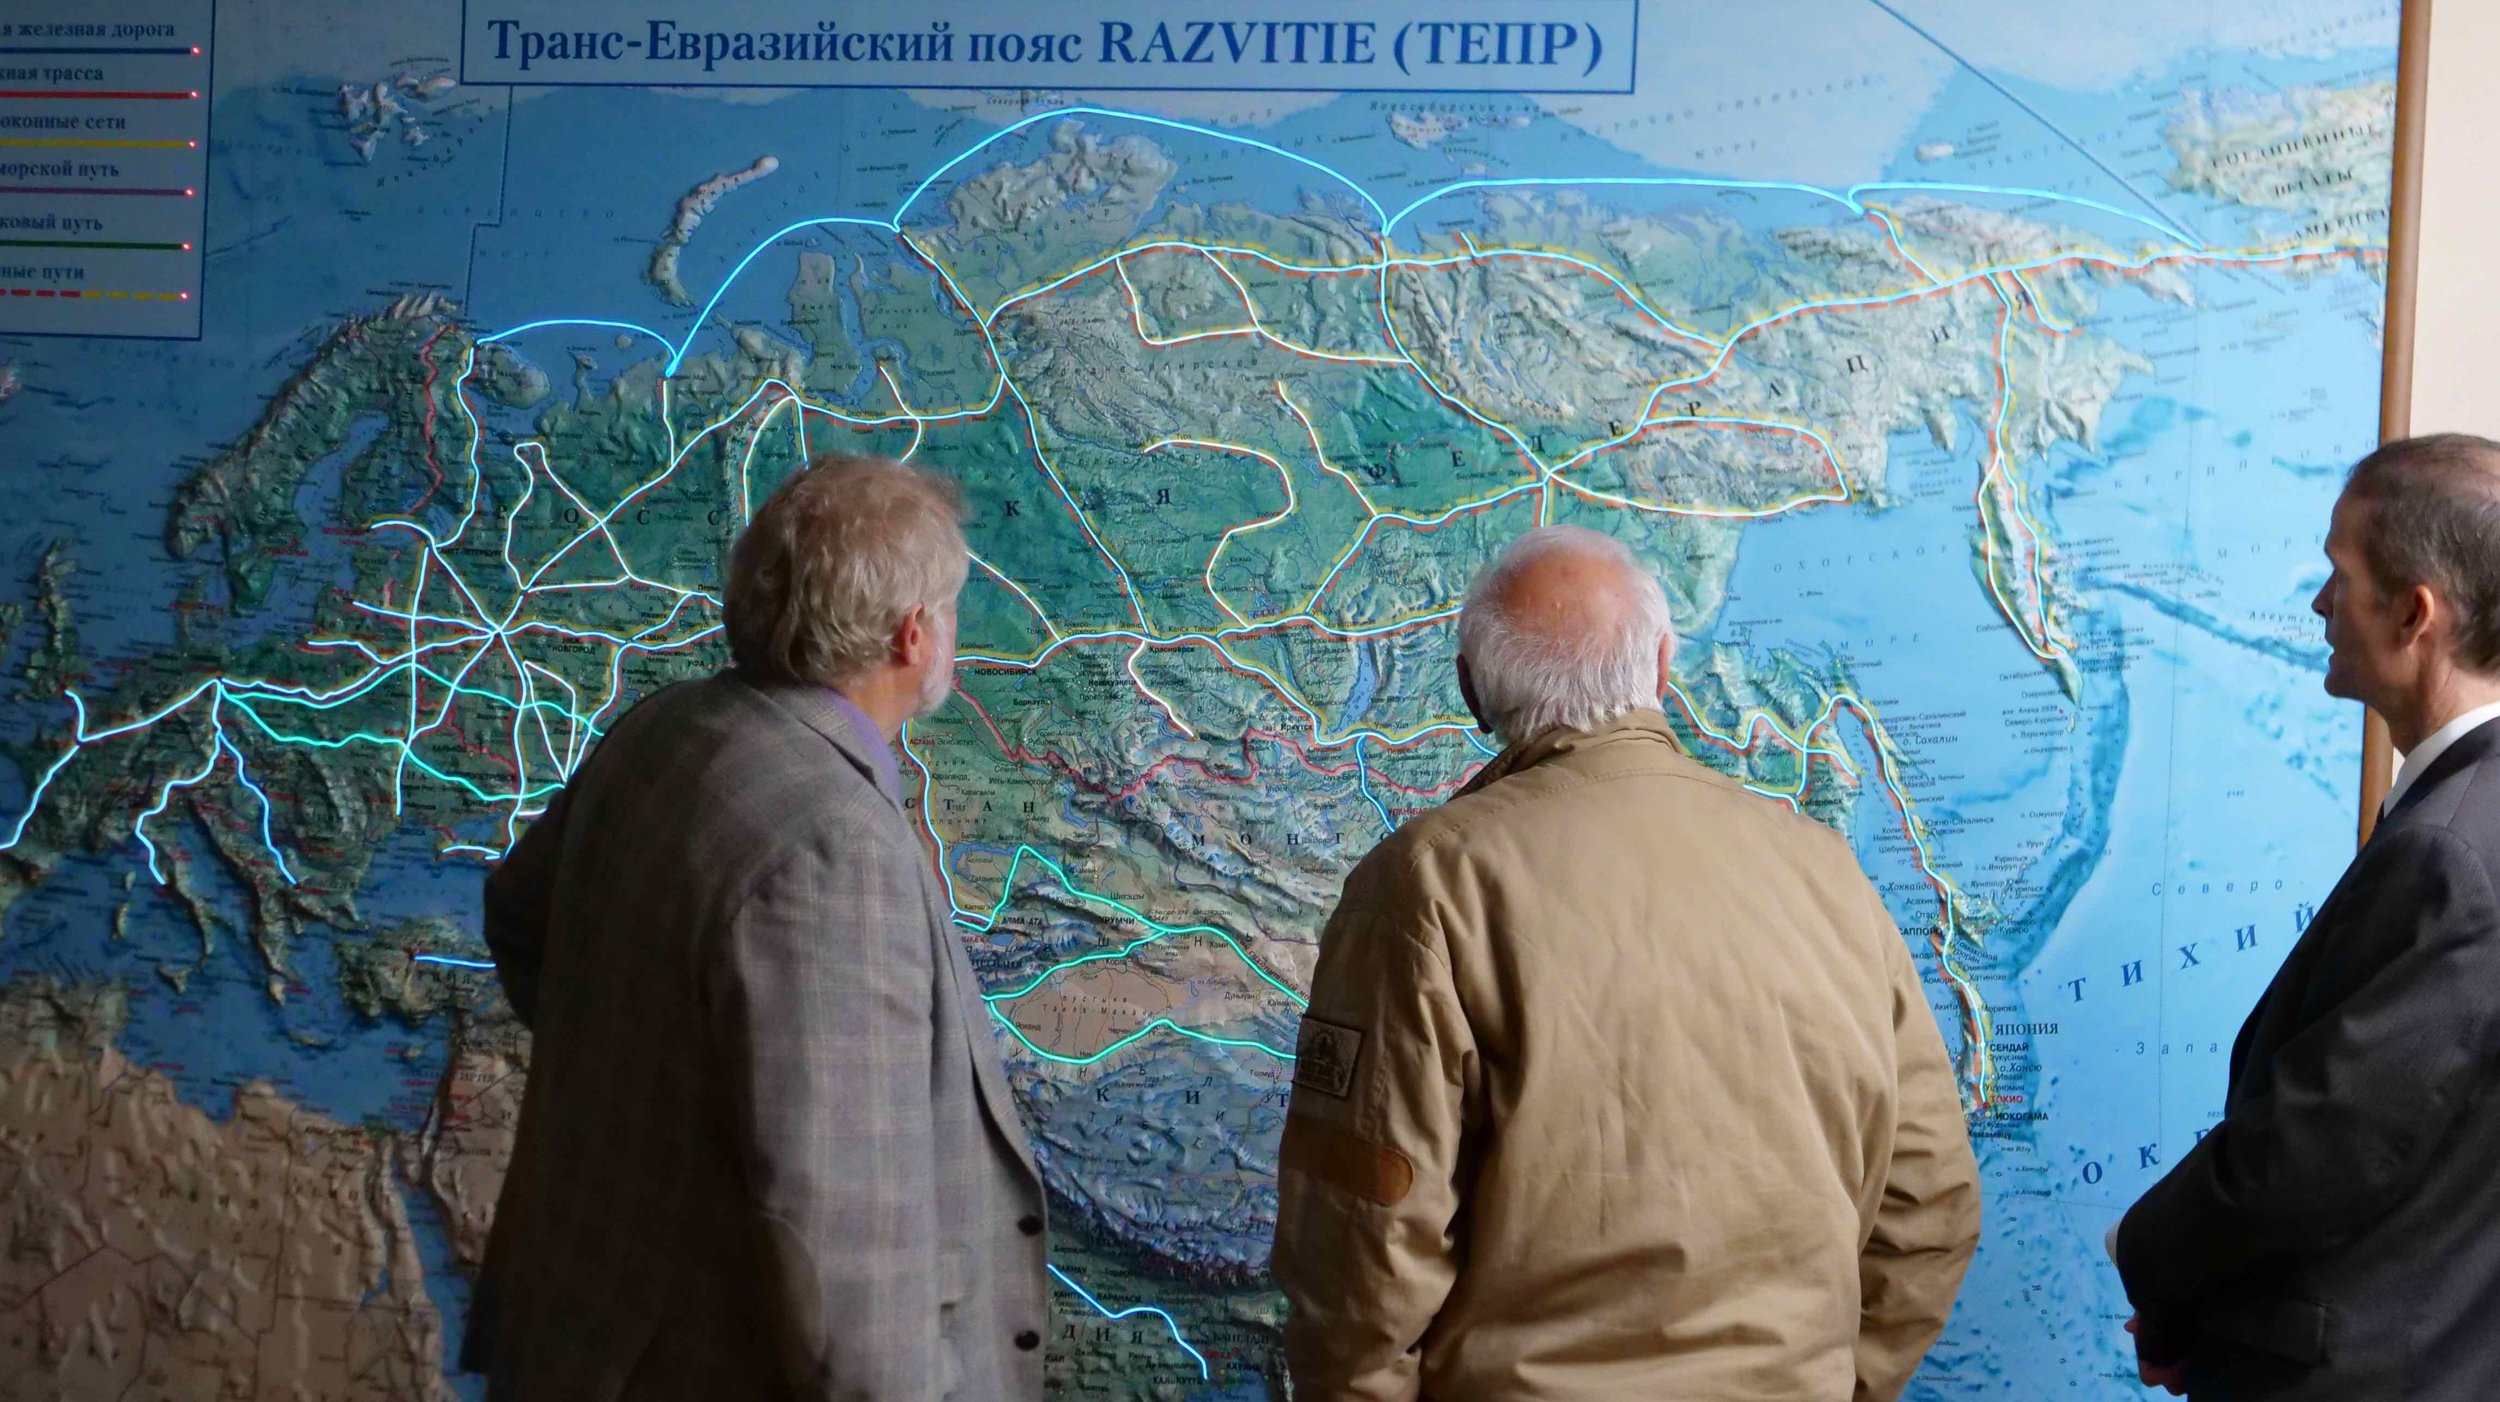 The InterContinental Railway team Victor Razbegin, George Koumal and Scott Spencer examine the map on the wall of the Russian Academy of Sciences showing the current and planned transportation routes in the Russian Federation, Europe and Asia. At the top right is the planned rail connection for the InterContinental Railway across the Bering Strait to Alaska.